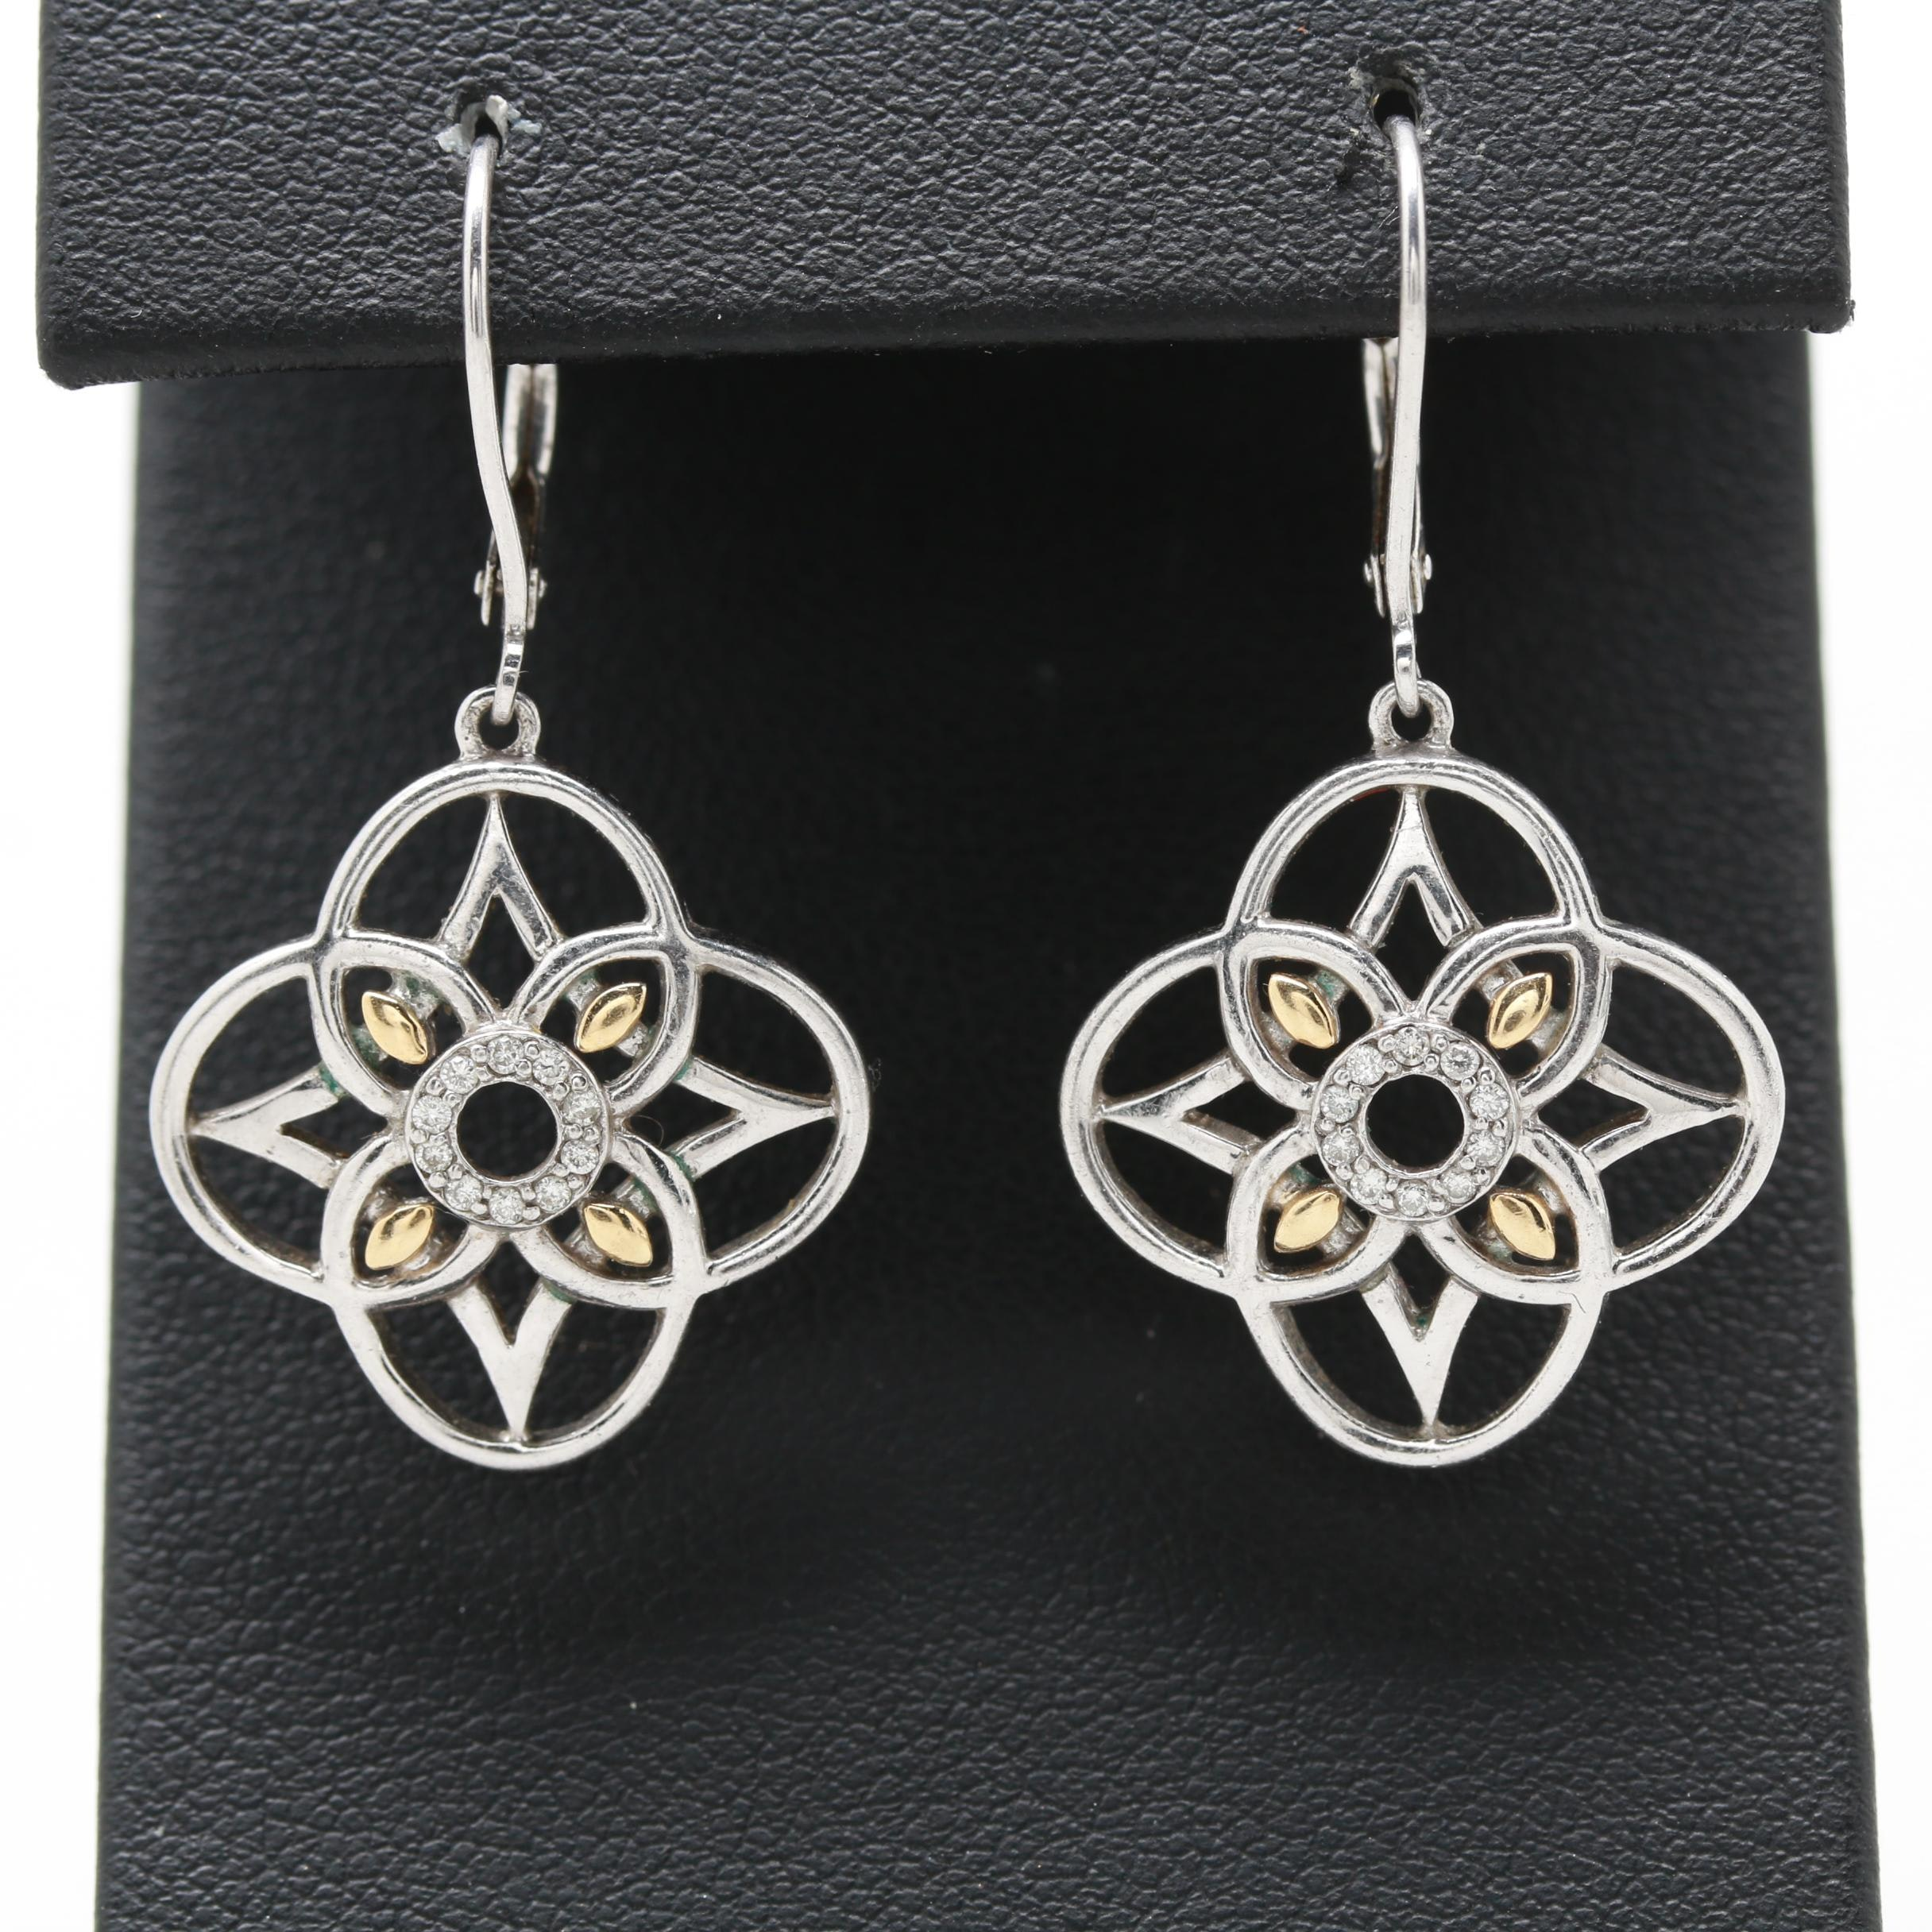 Zé Quatrefoil Sterling Silver Diamond Earrings With 18K Yellow Gold Accents